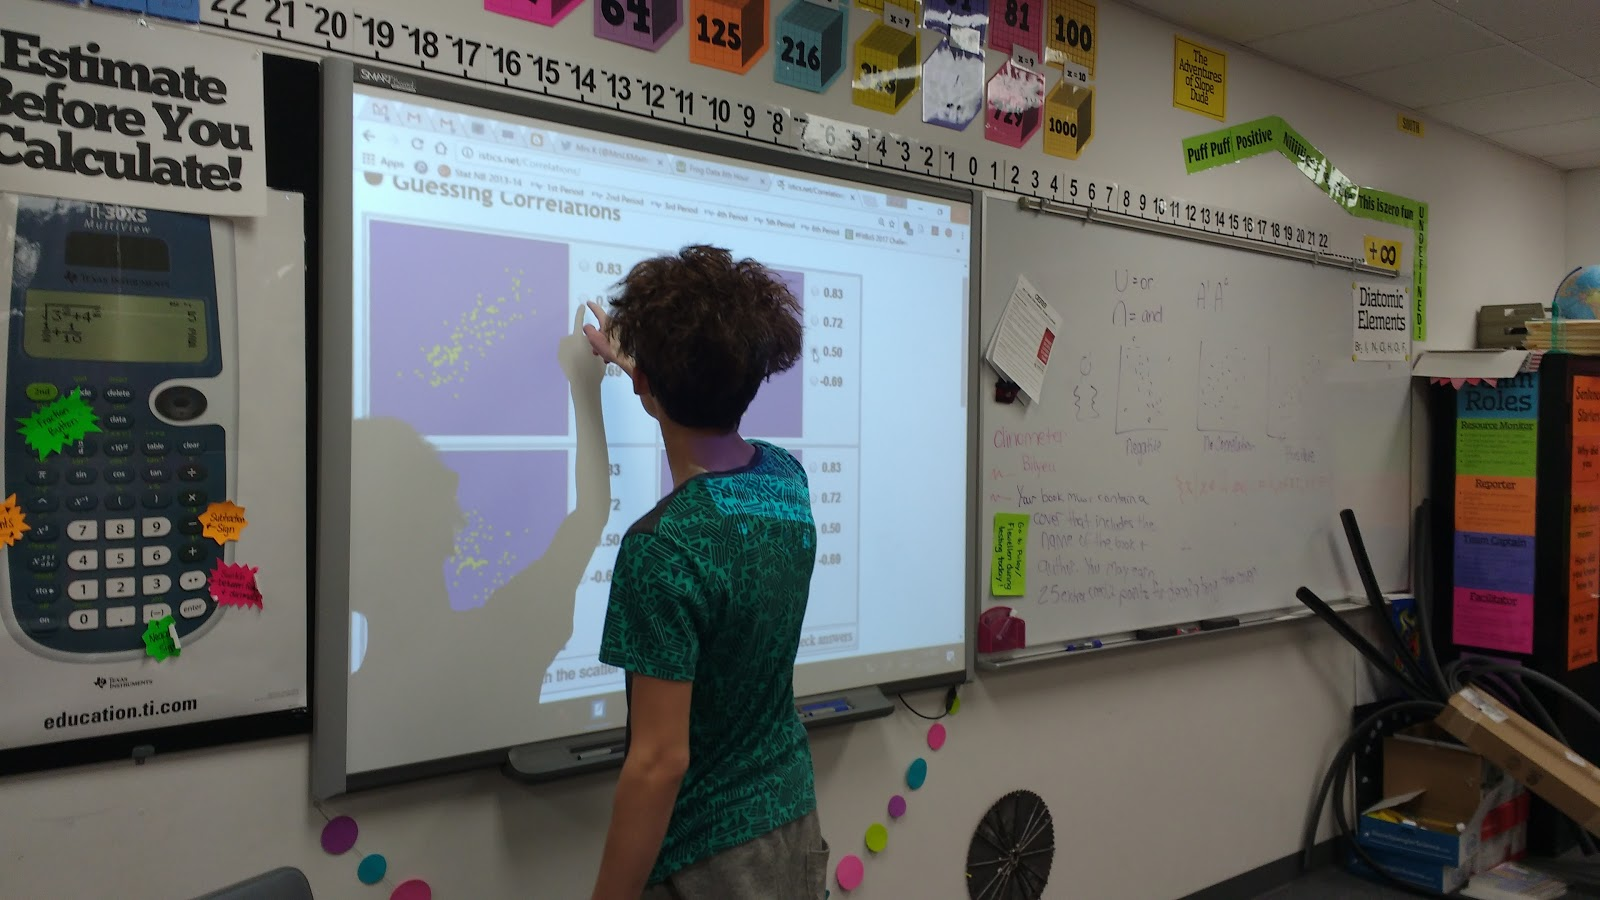 Math Love Guessing Correlation Coefficient Game